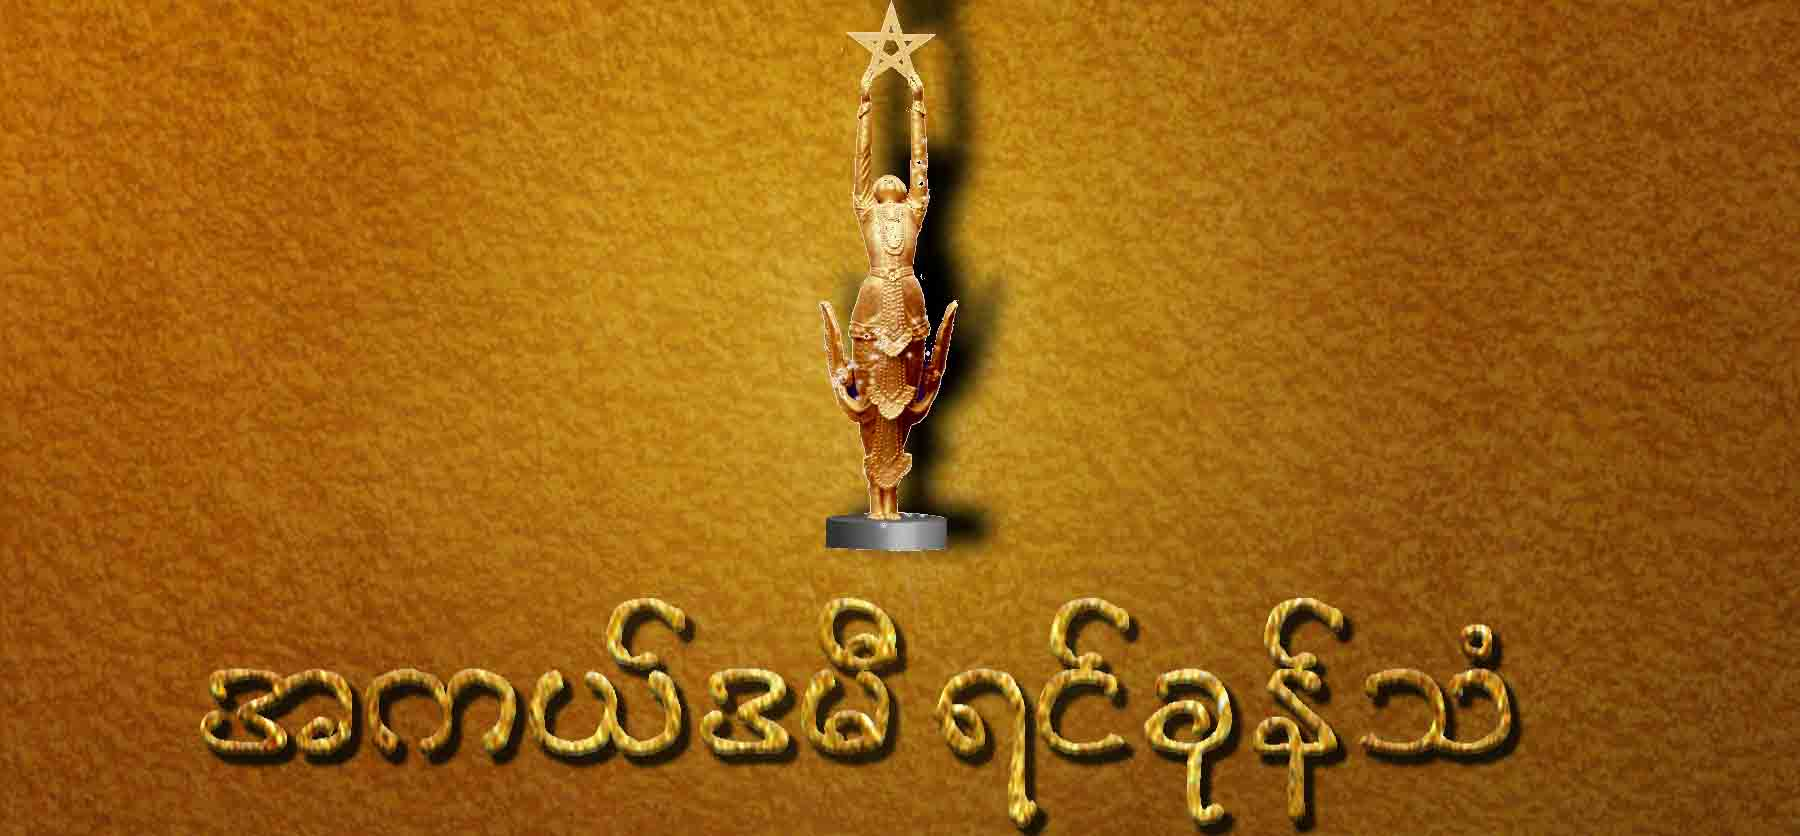 အကယ္ဒမီ